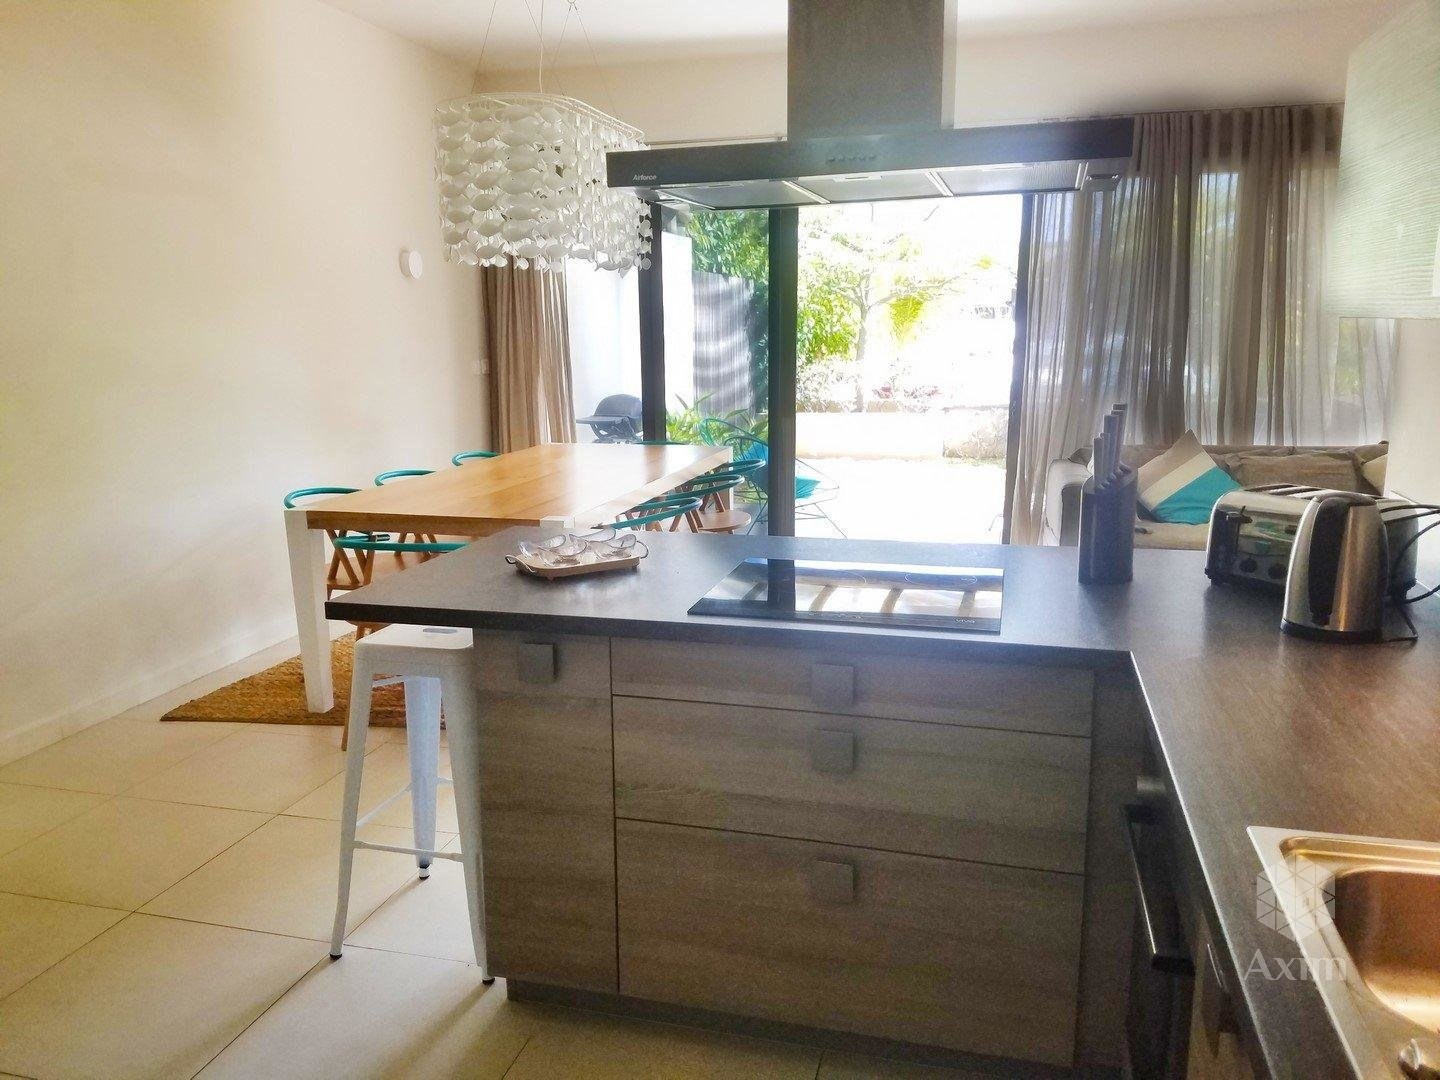 TAMARIN - Appartement 3 chambres + emplacement bateau